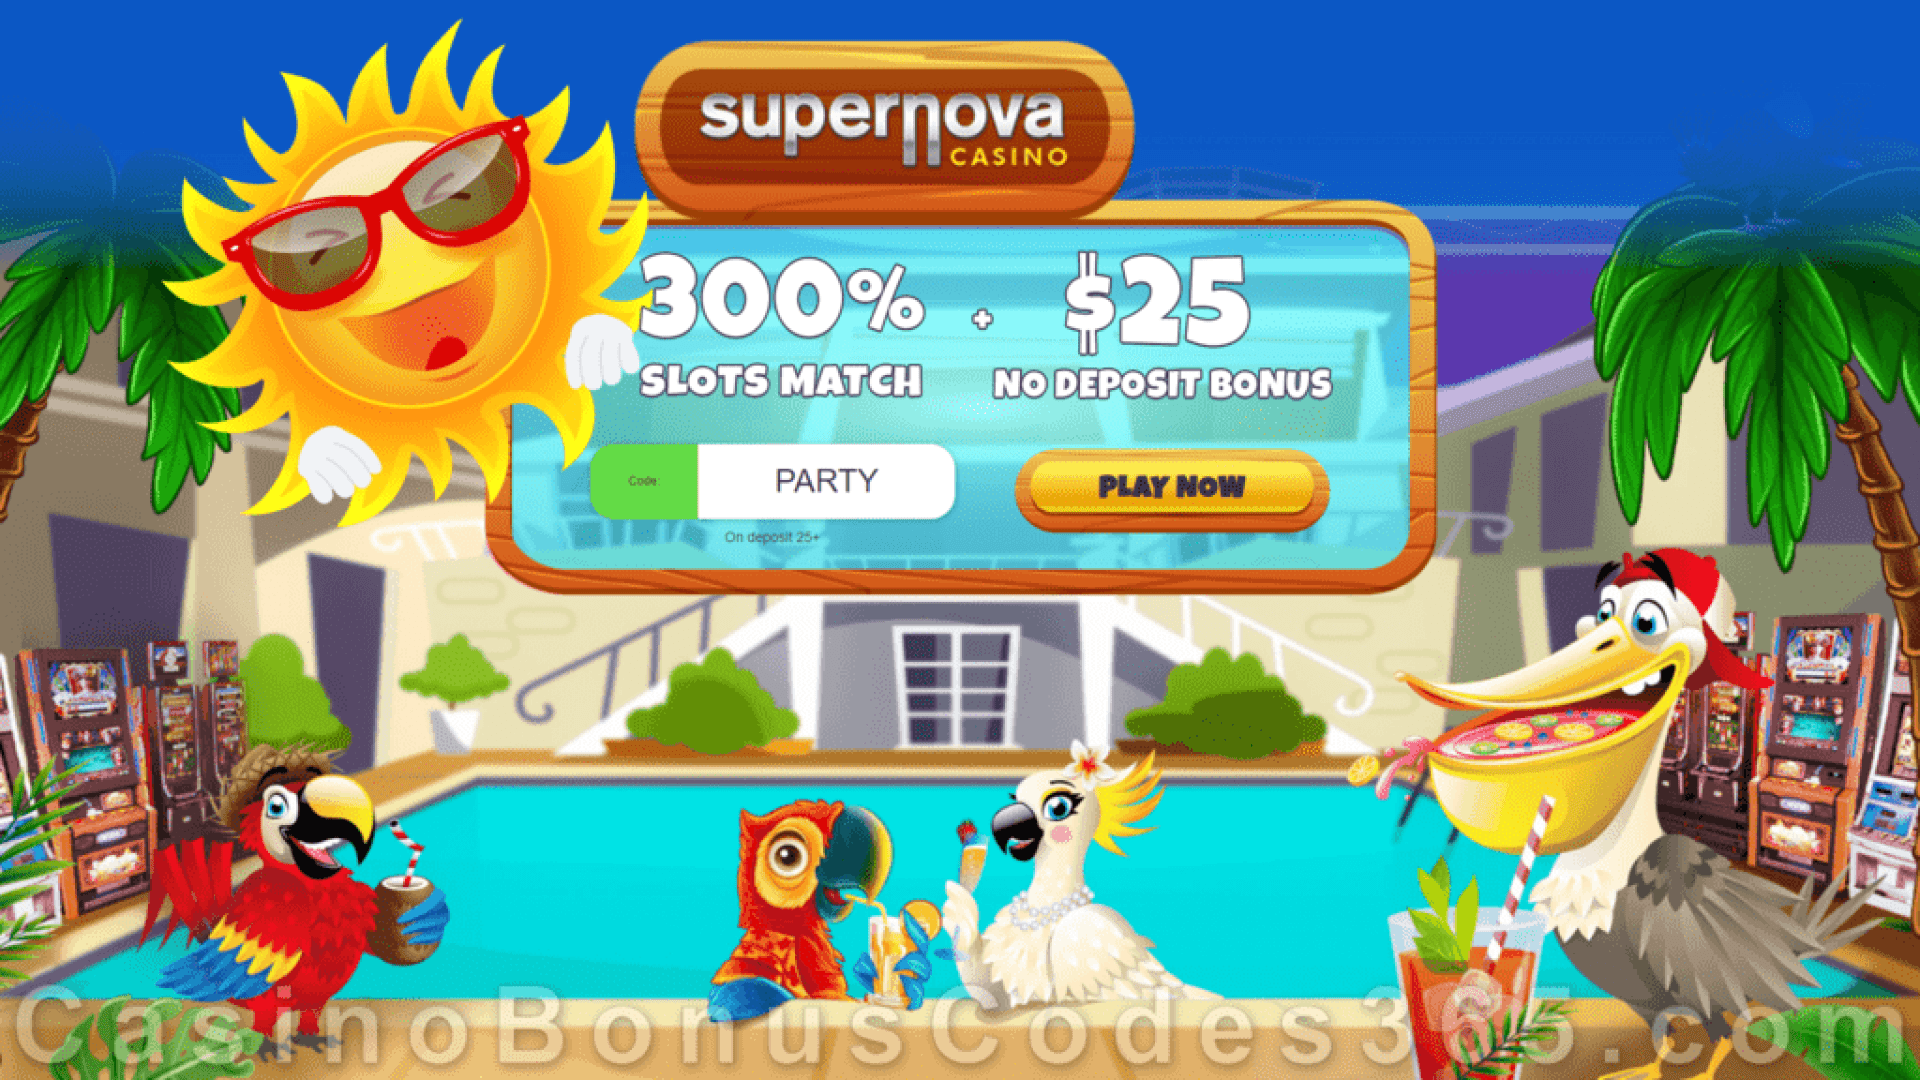 Supernova Casino 300% Match plus $25 No Deposit FREE Chip Summer Promo